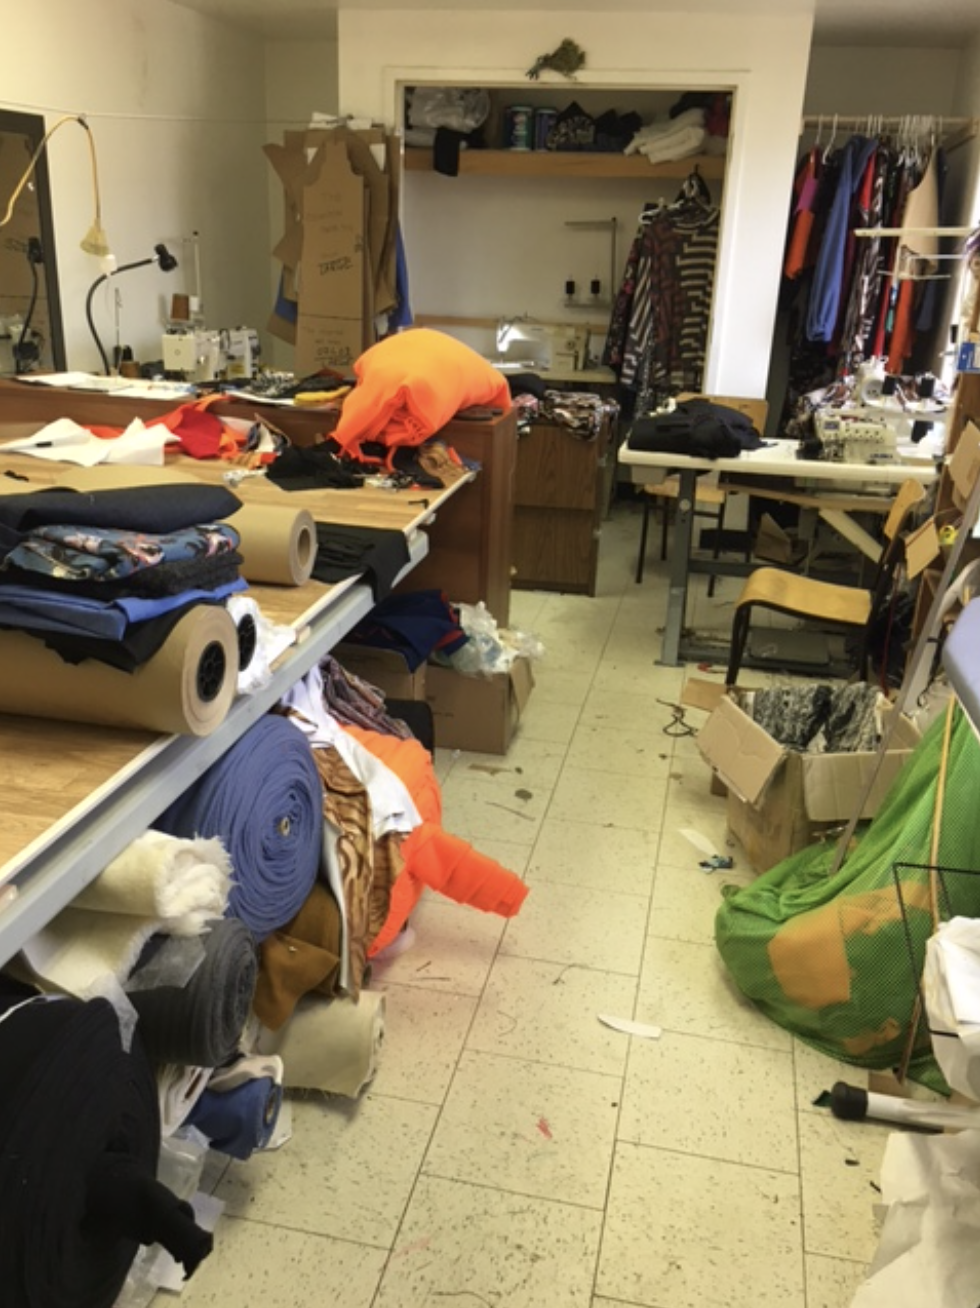 This is the studio above the firehall where we have set up shop. It's 12ft by 20ft.It looks messy but that's just because there is so much activity as we cut and sew fabrics and make patterns, while visitors come and go throughout the day.